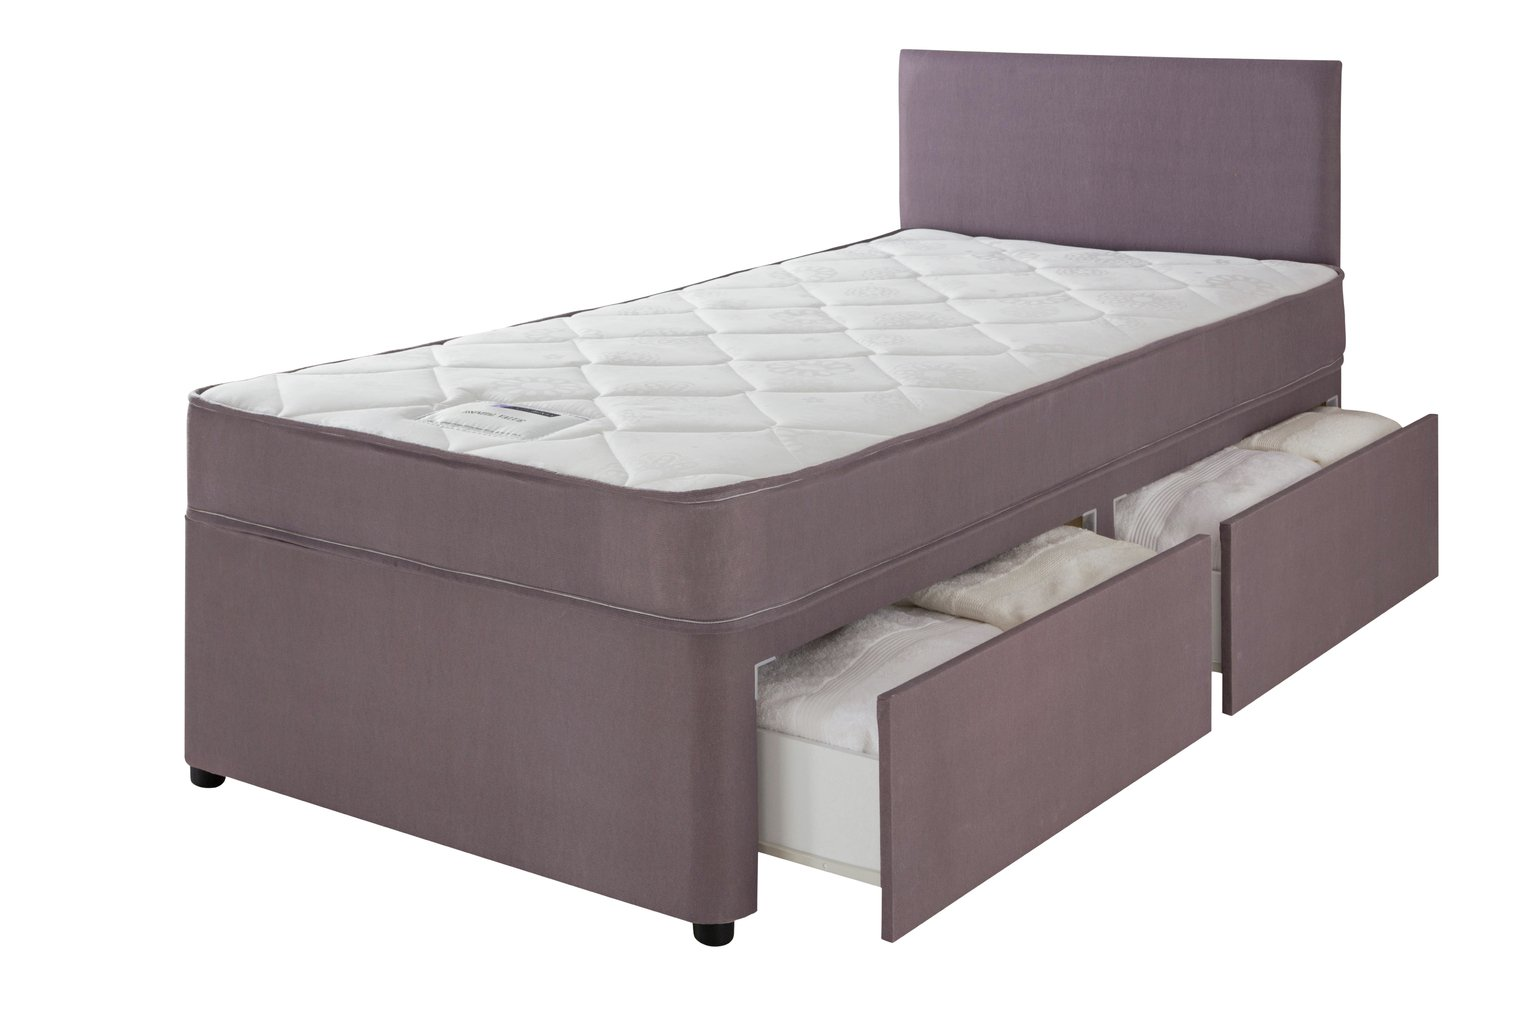 Divan Bed Base Single Hf4you Brown Faux Leather Divan Bed Base 14 Dreamy Day Beds Perfect For